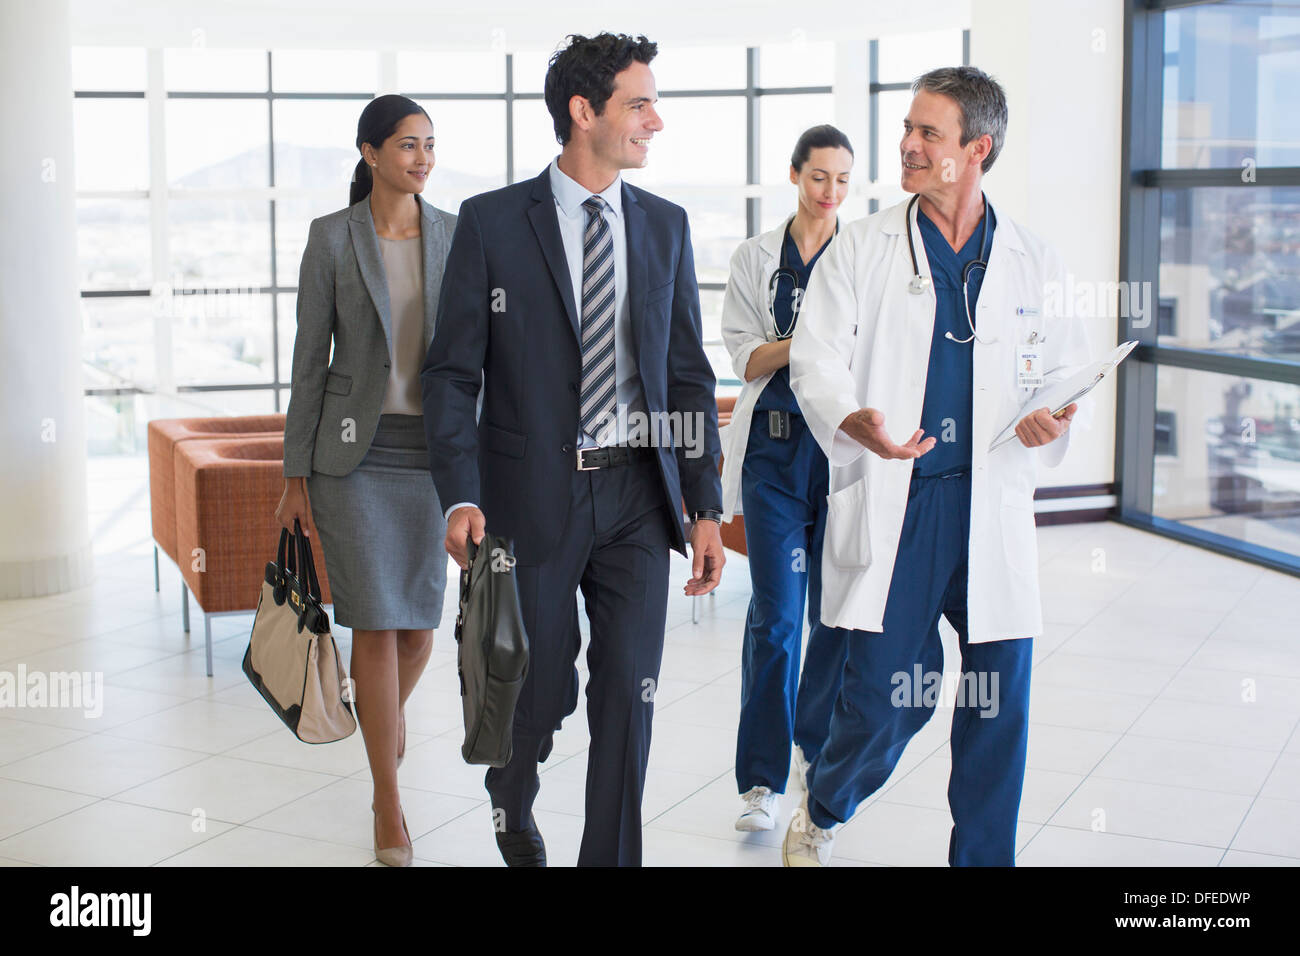 Doctors and business people talking in hospital - Stock Image